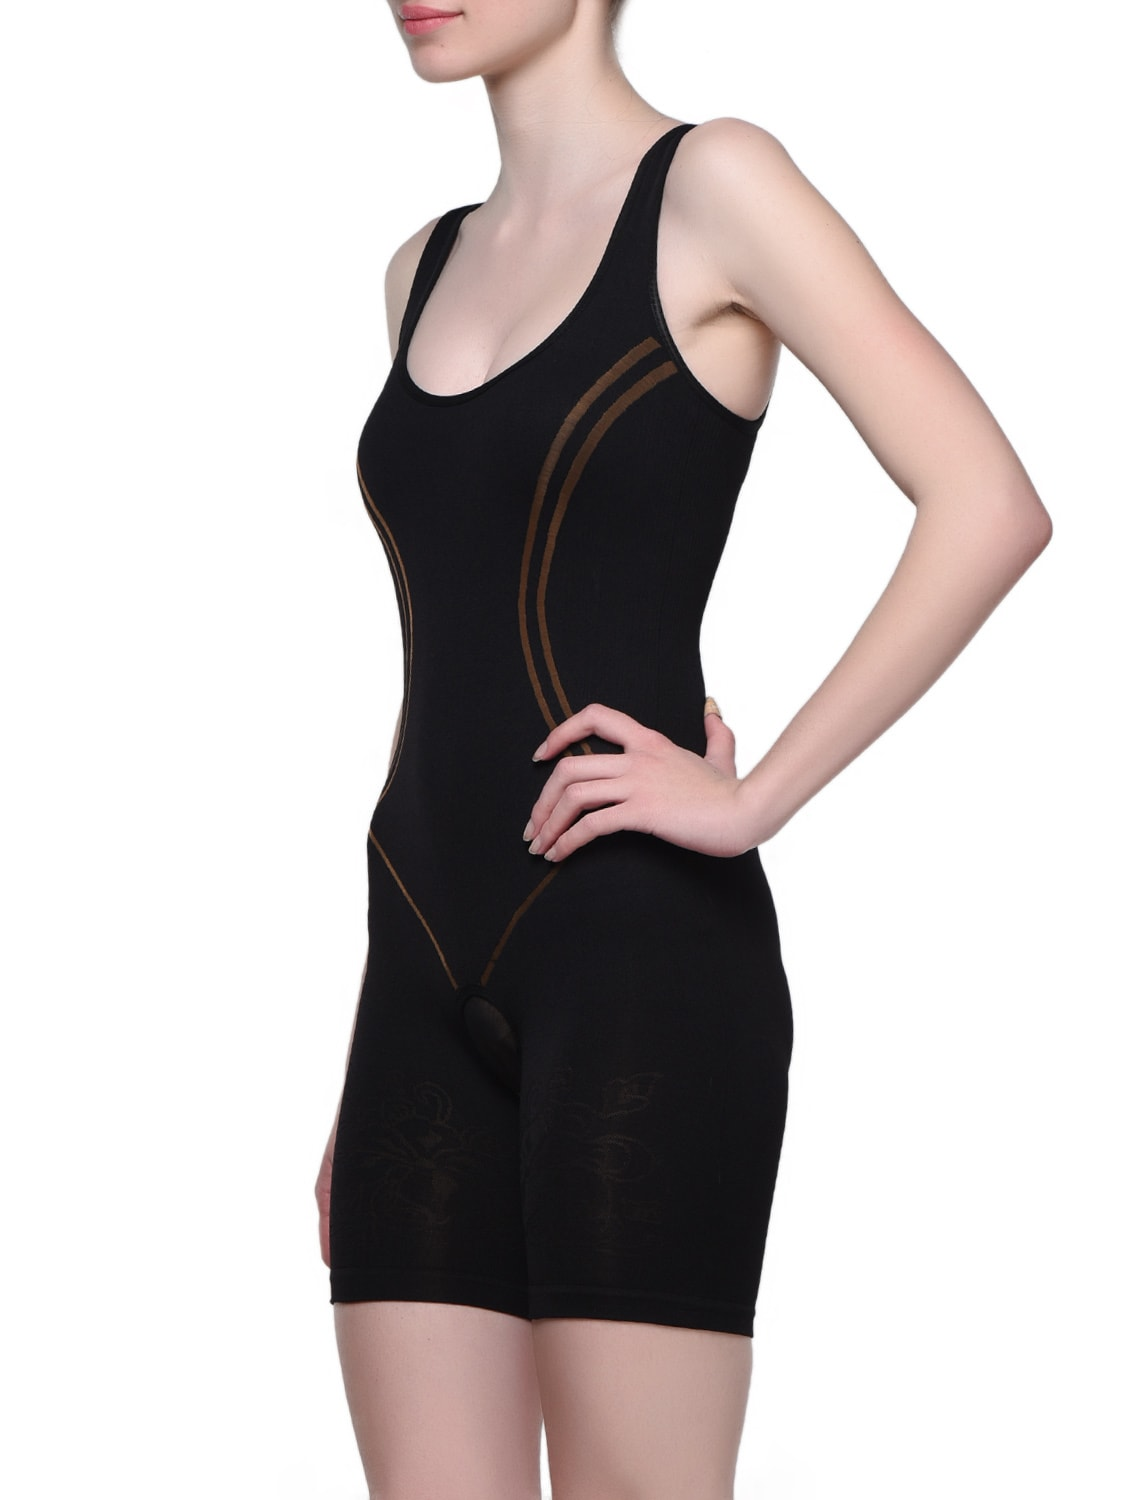 e9bbae1278 Buy Black Round Neck Body Shaper by Clovia - Online shopping for Shapewear  in India